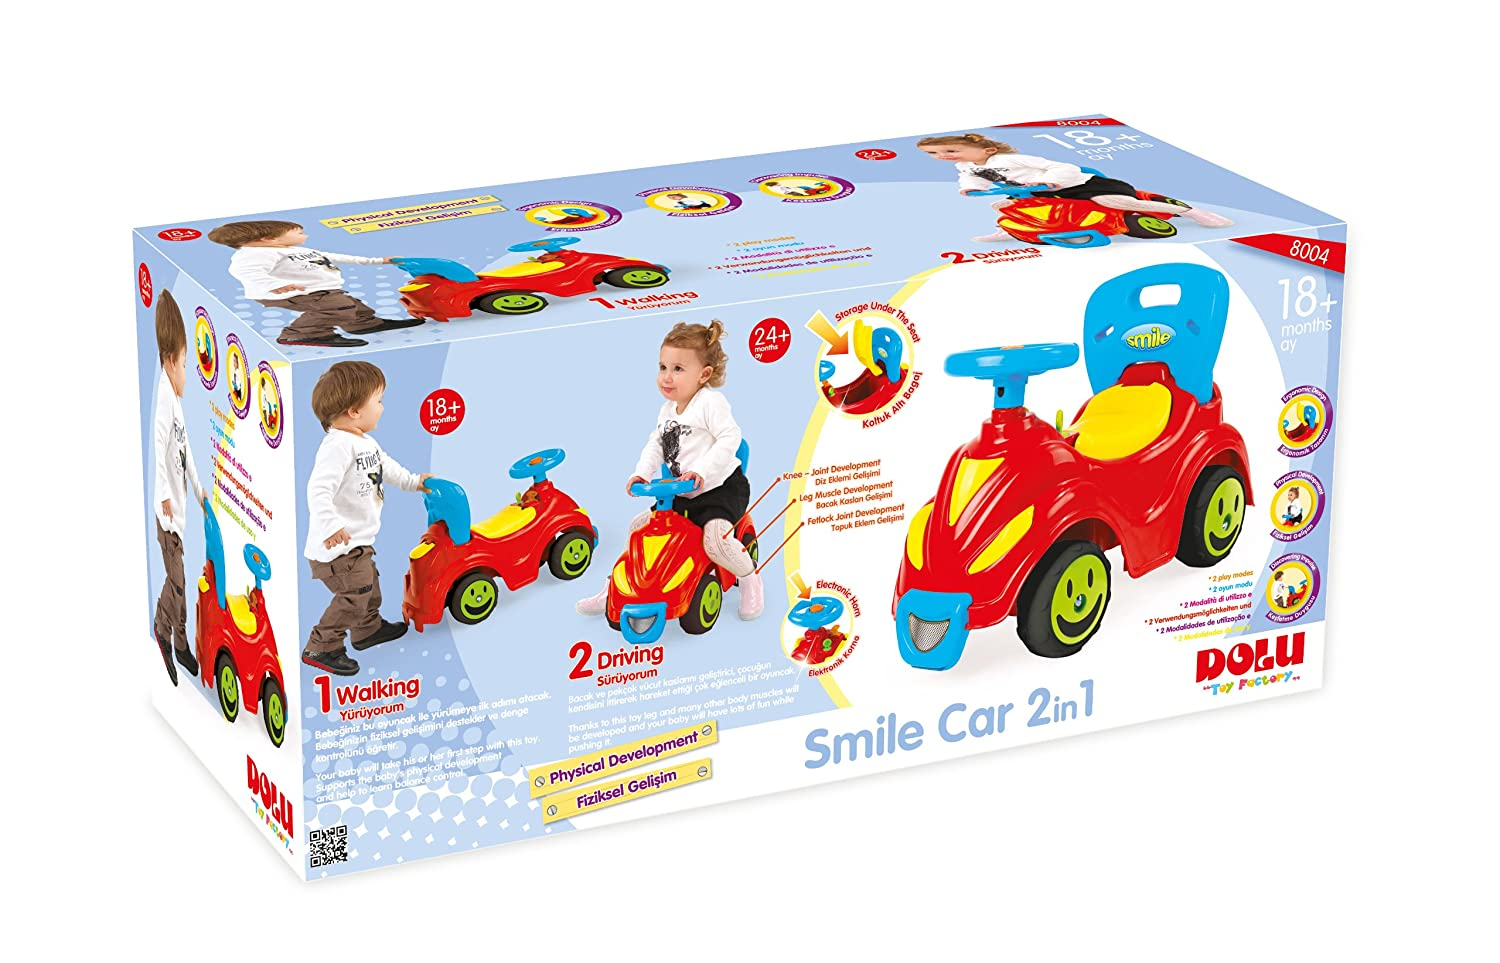 Smile Car 2 in 1 Walker & Driving Dolu